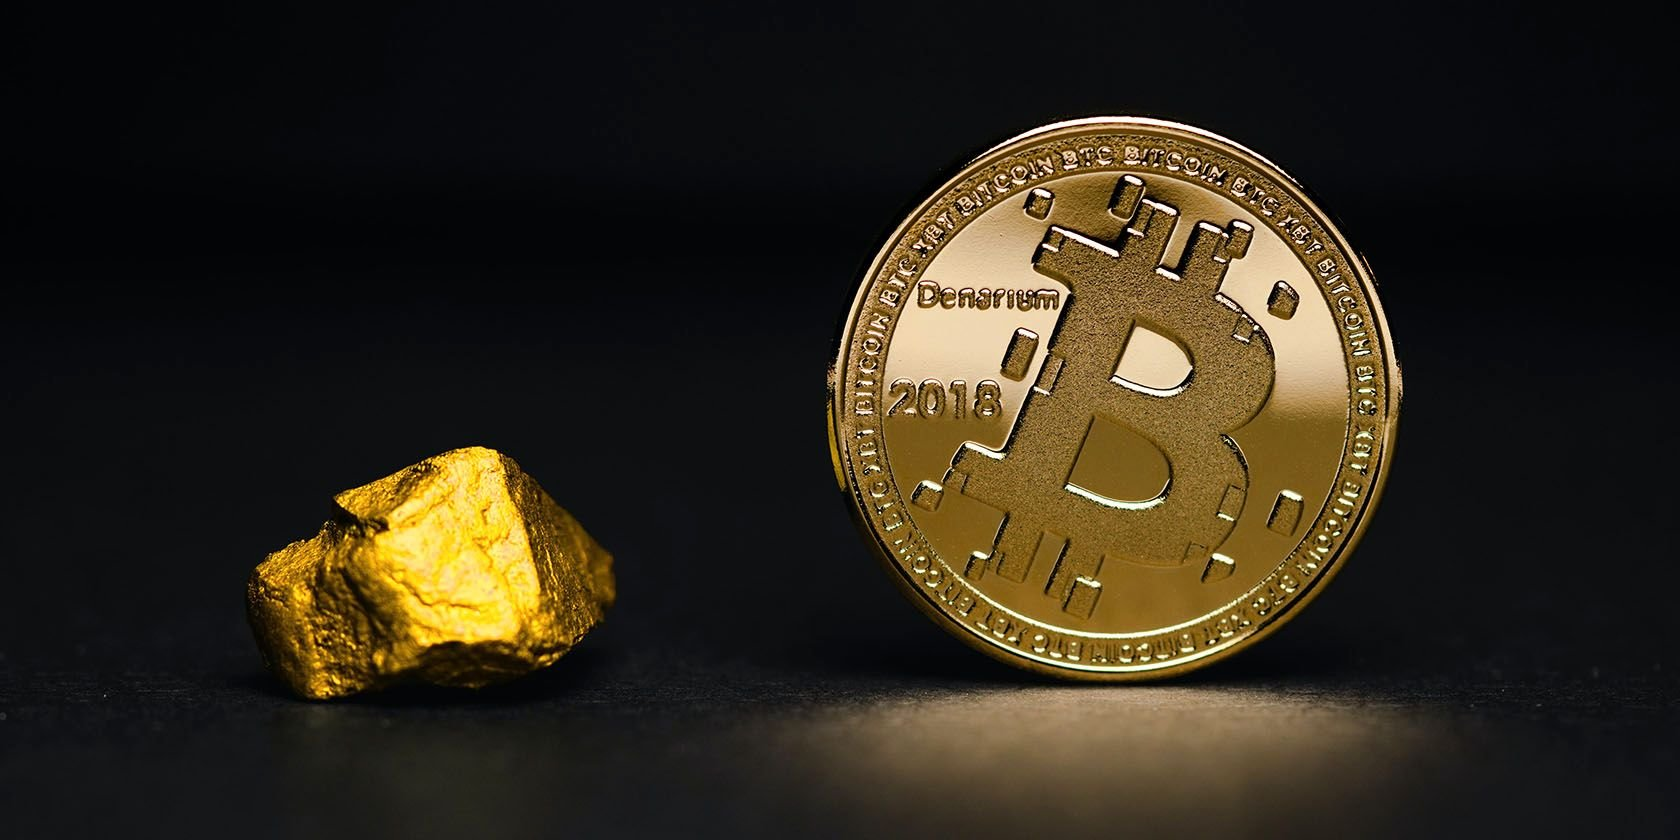 The Beginner's Guide to Bitcoin: What Is It and Why Should You Care?